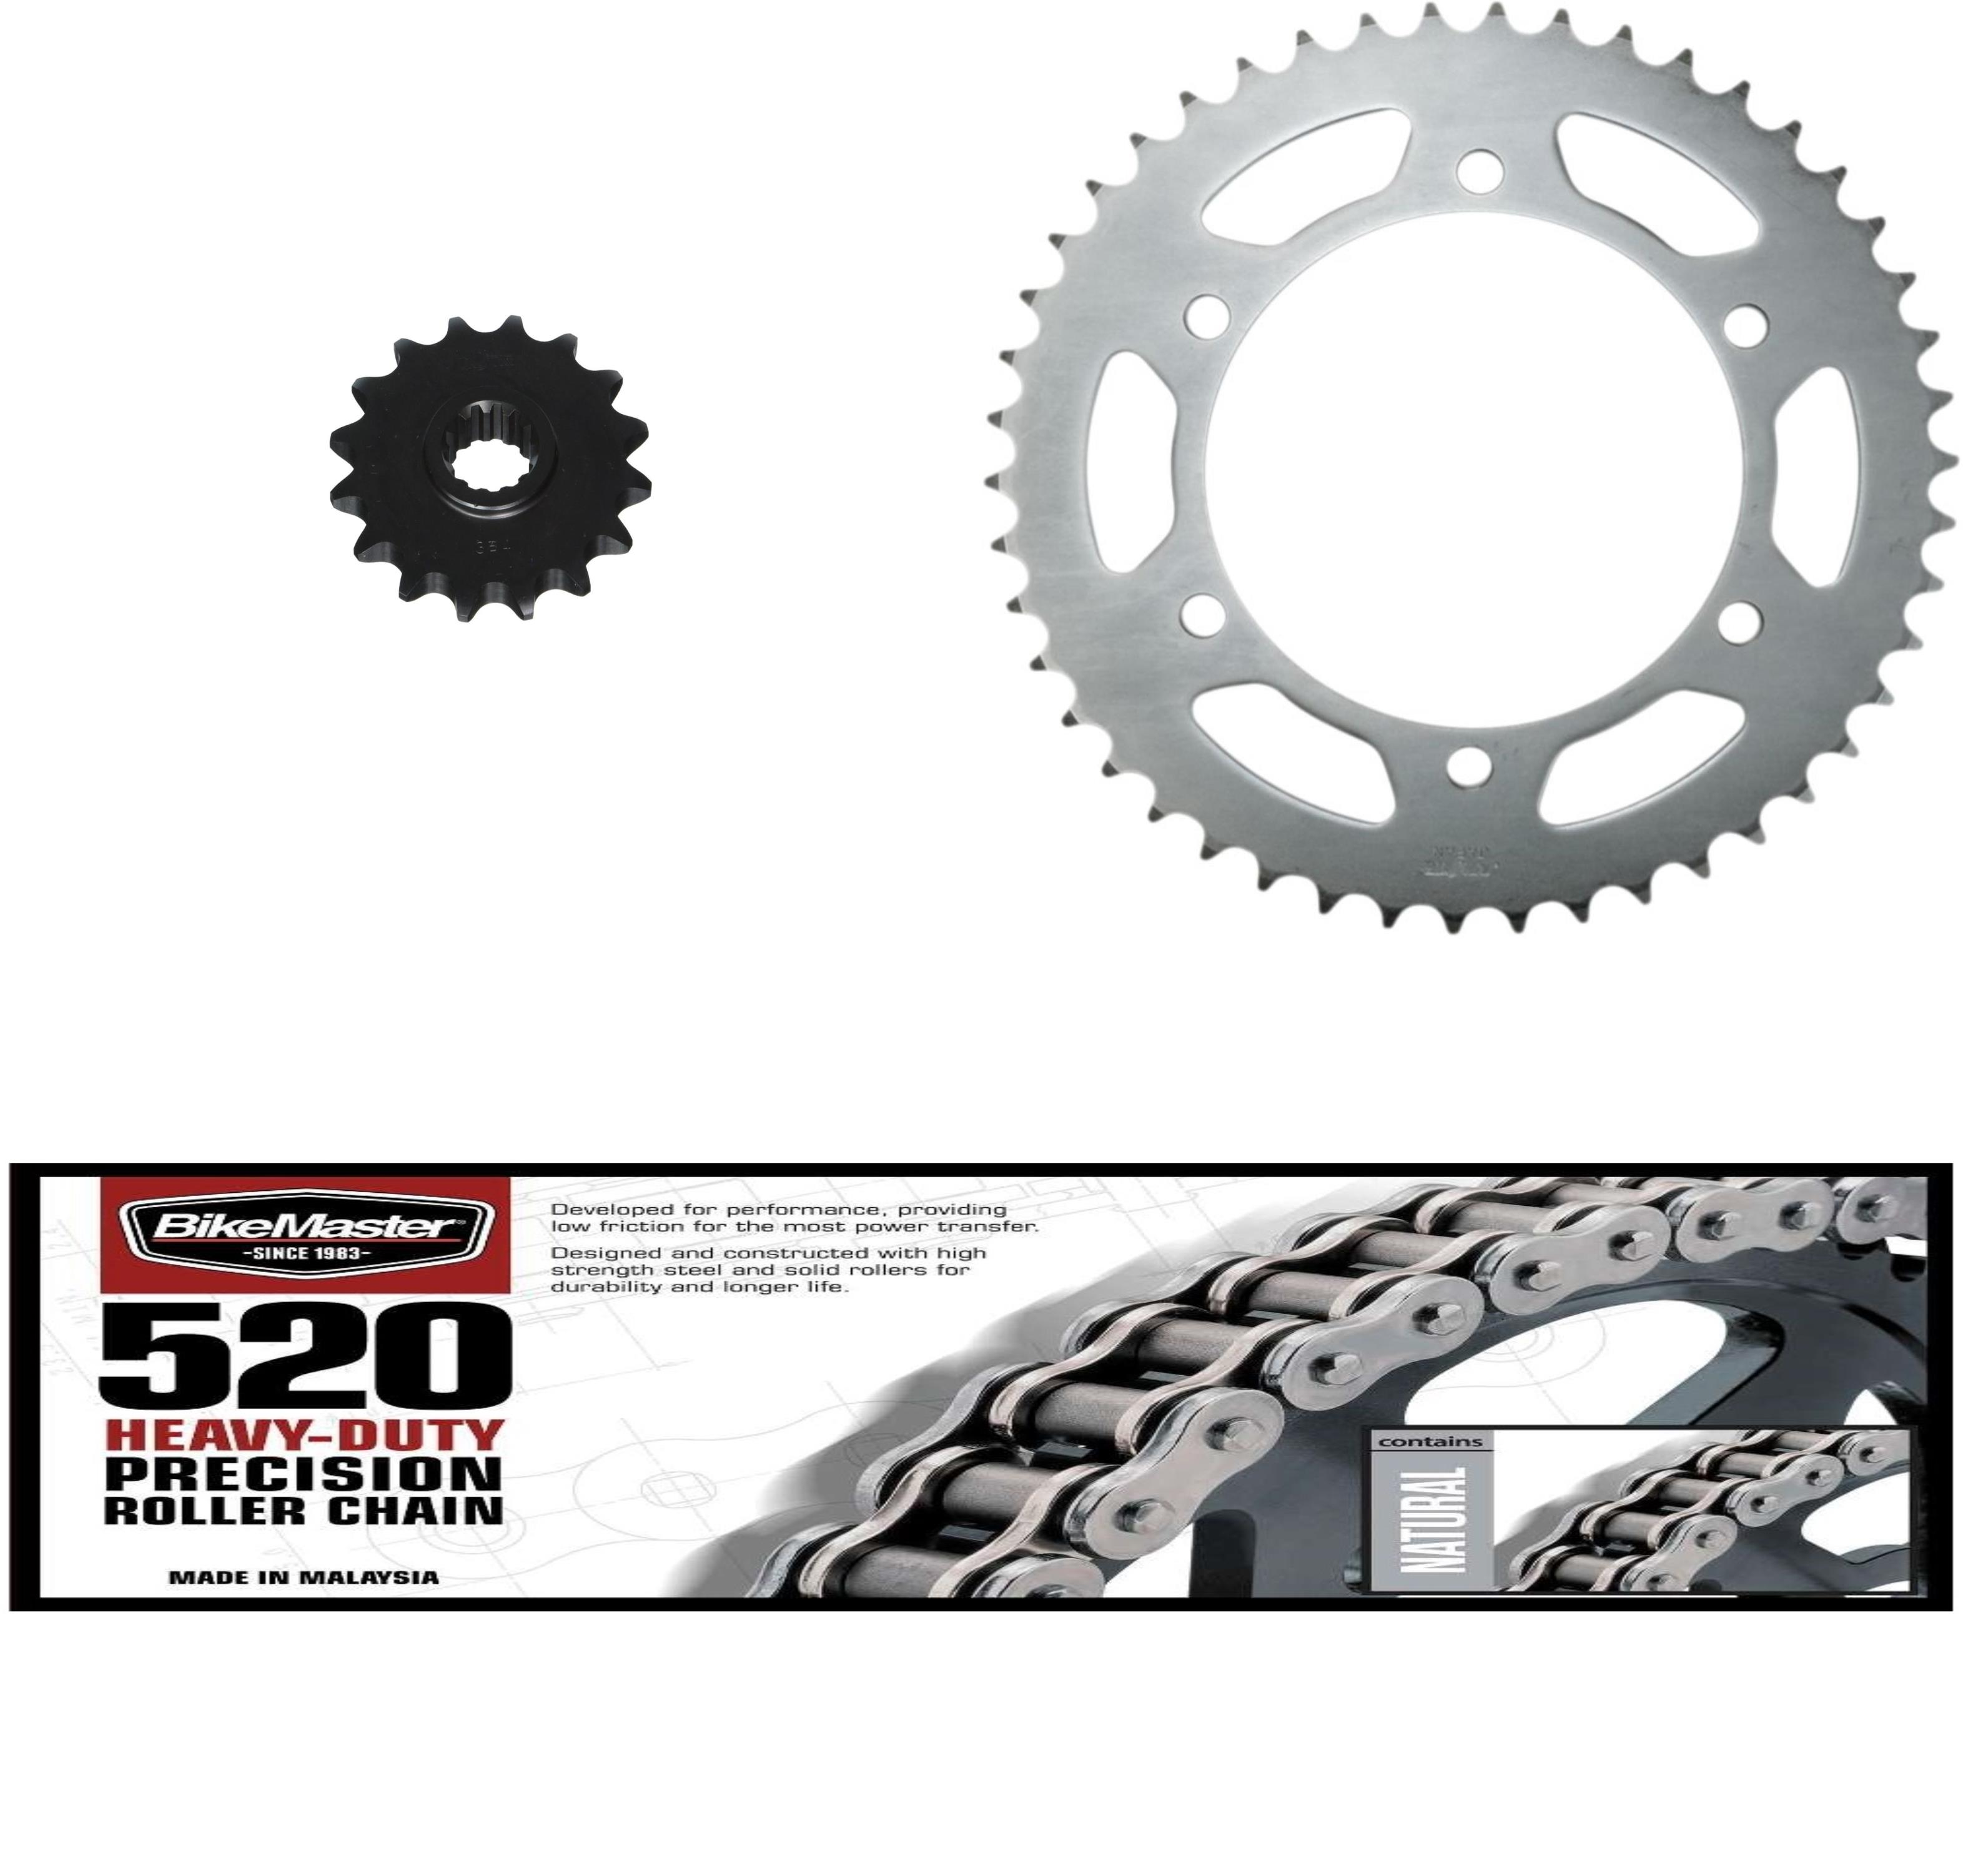 BIKEMASTER 520H Heavy-Duty Precision Roller Chain, SUNSTAR Front & Rear Steel Sprocket Kit for Street YAMAHA FZ6R 2009-2015